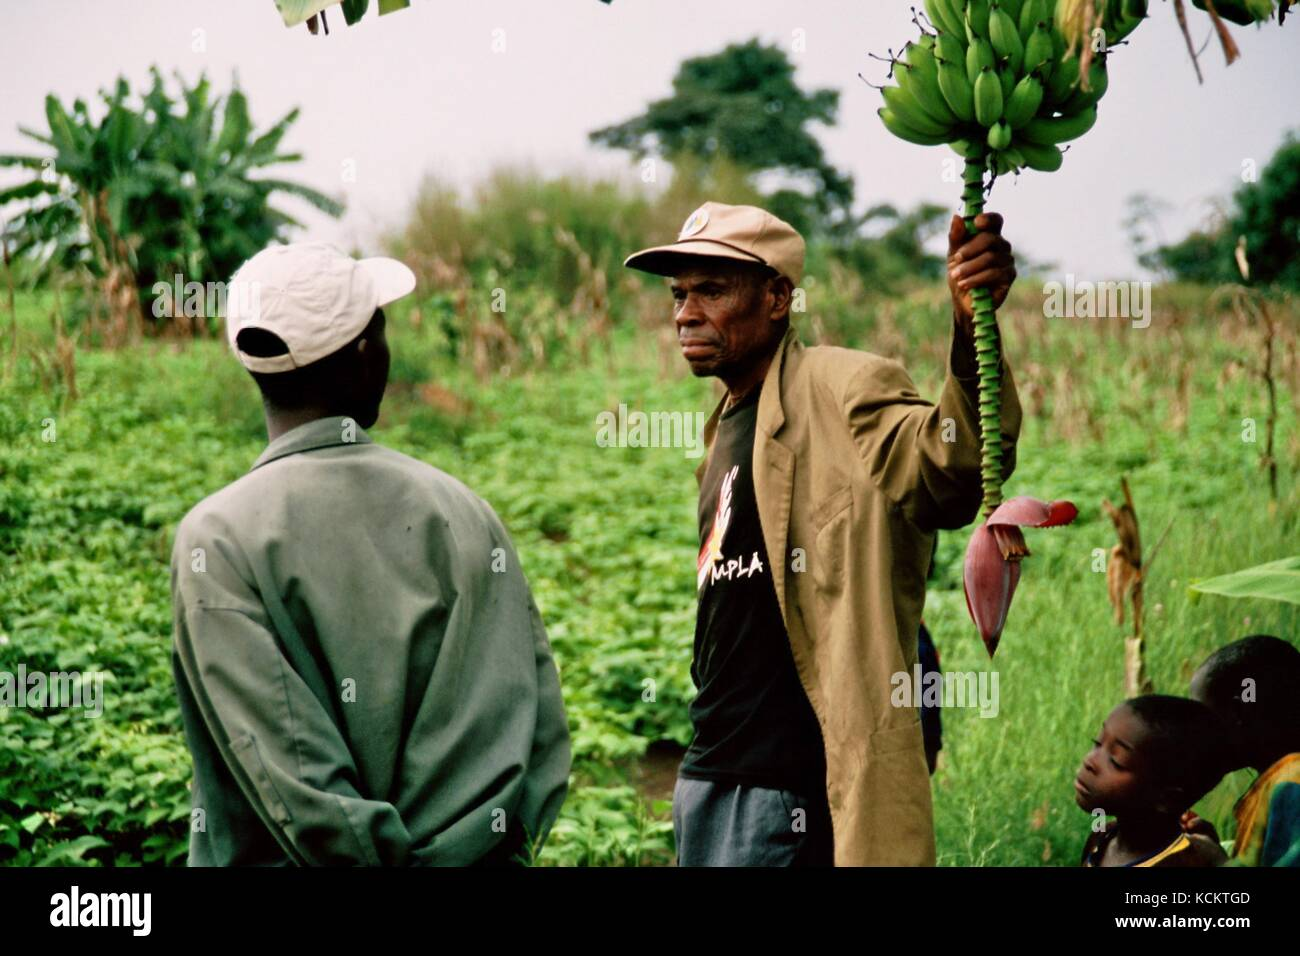 MANGUE, ANGOLA - May 15, 2007: A farmer on his field. The German Welthungerhilfe helps cultivate crops. Stock Photo